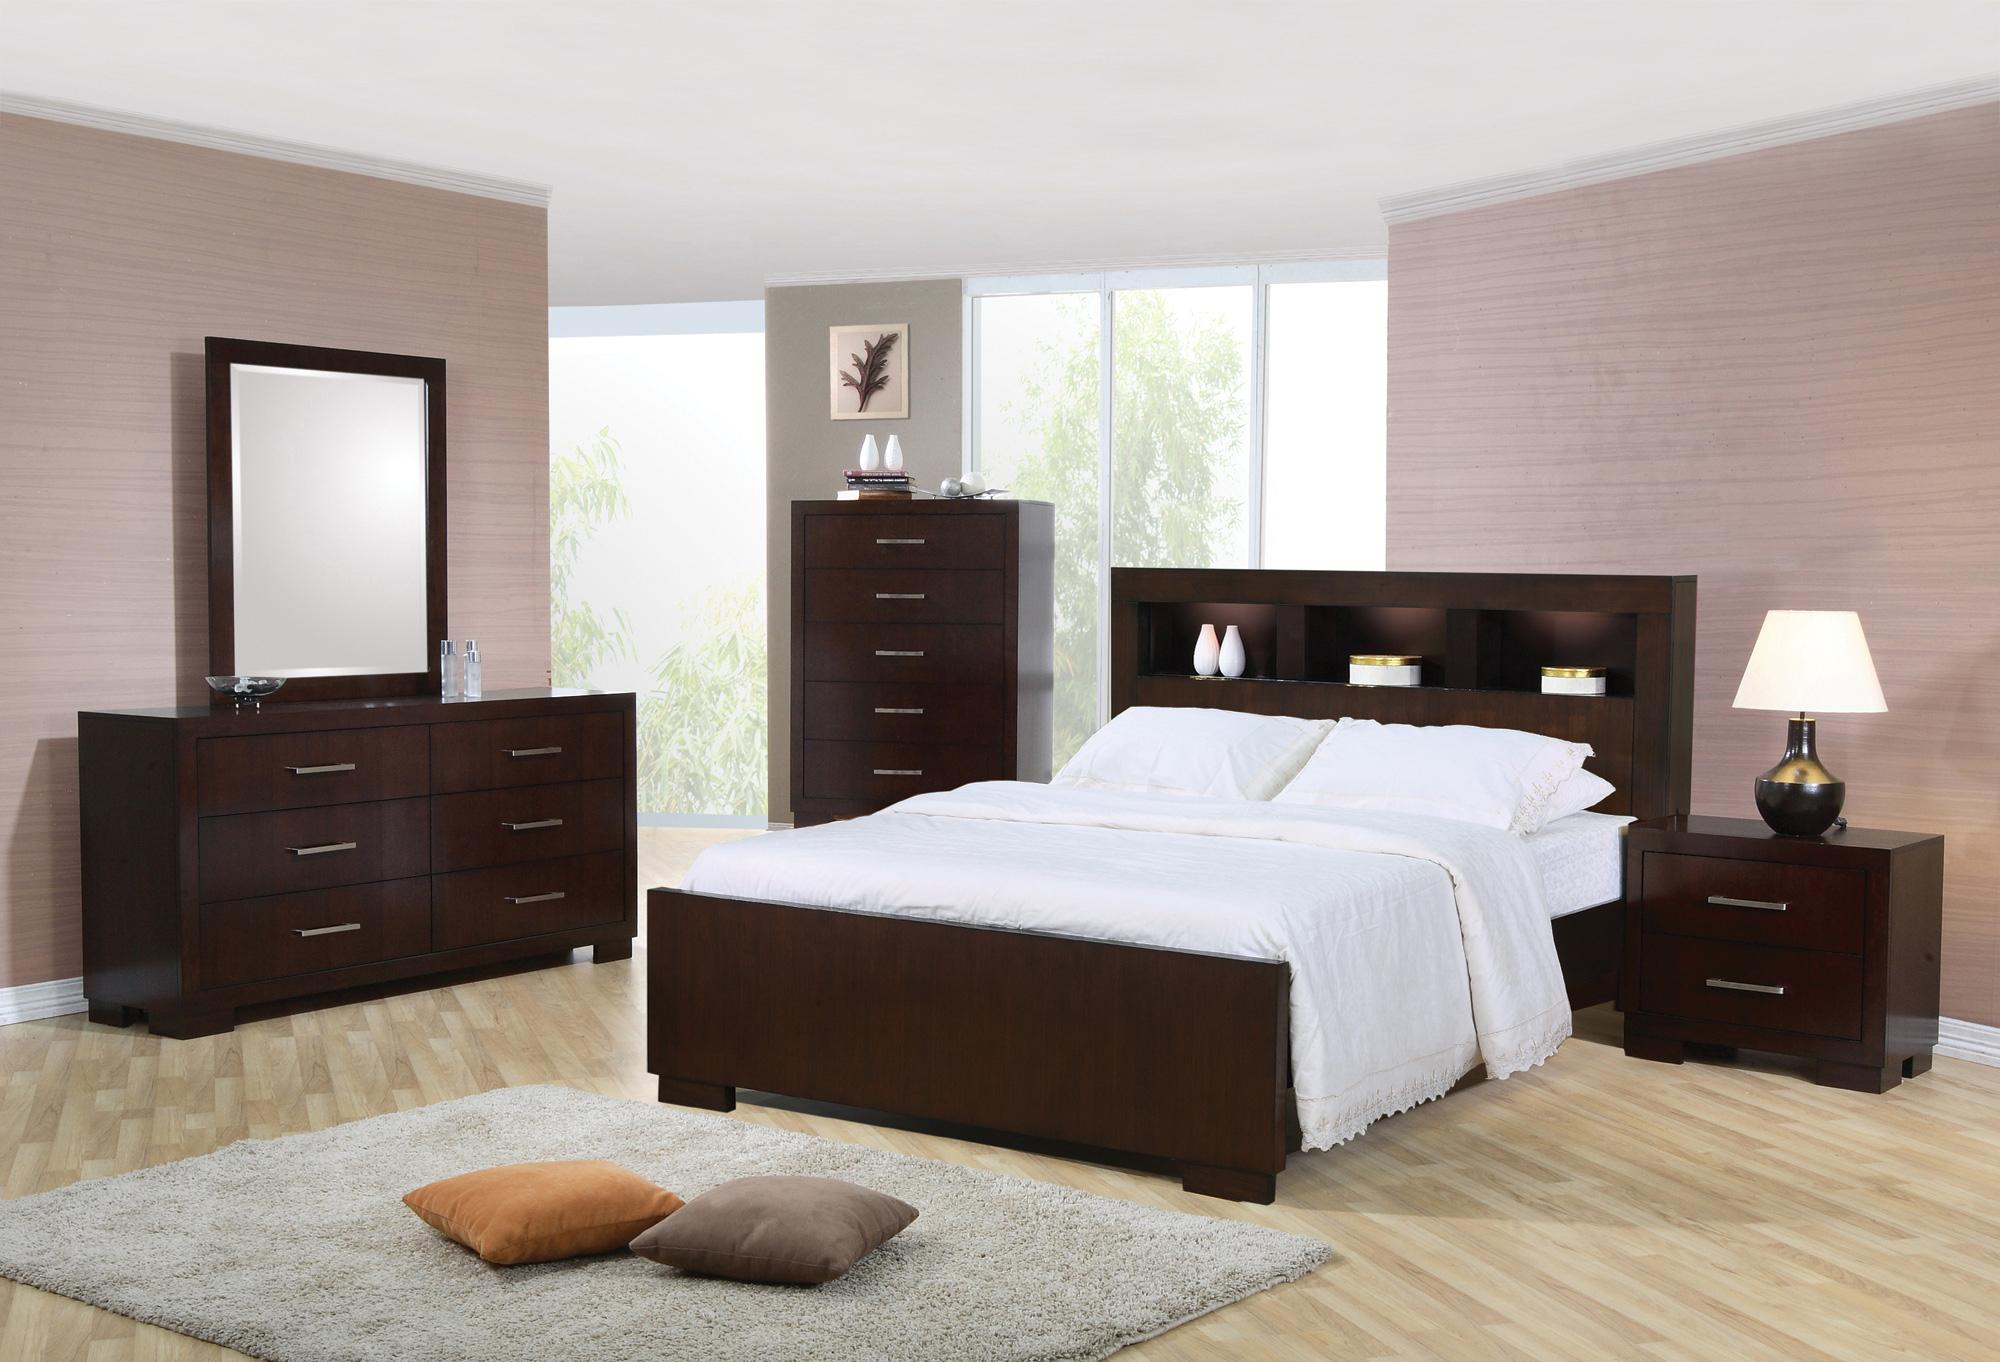 Coaster Jessica King Contemporary Bed With Storage Headboard And Built In Lighting Michael S Furniture Warehouse Bookcase Beds